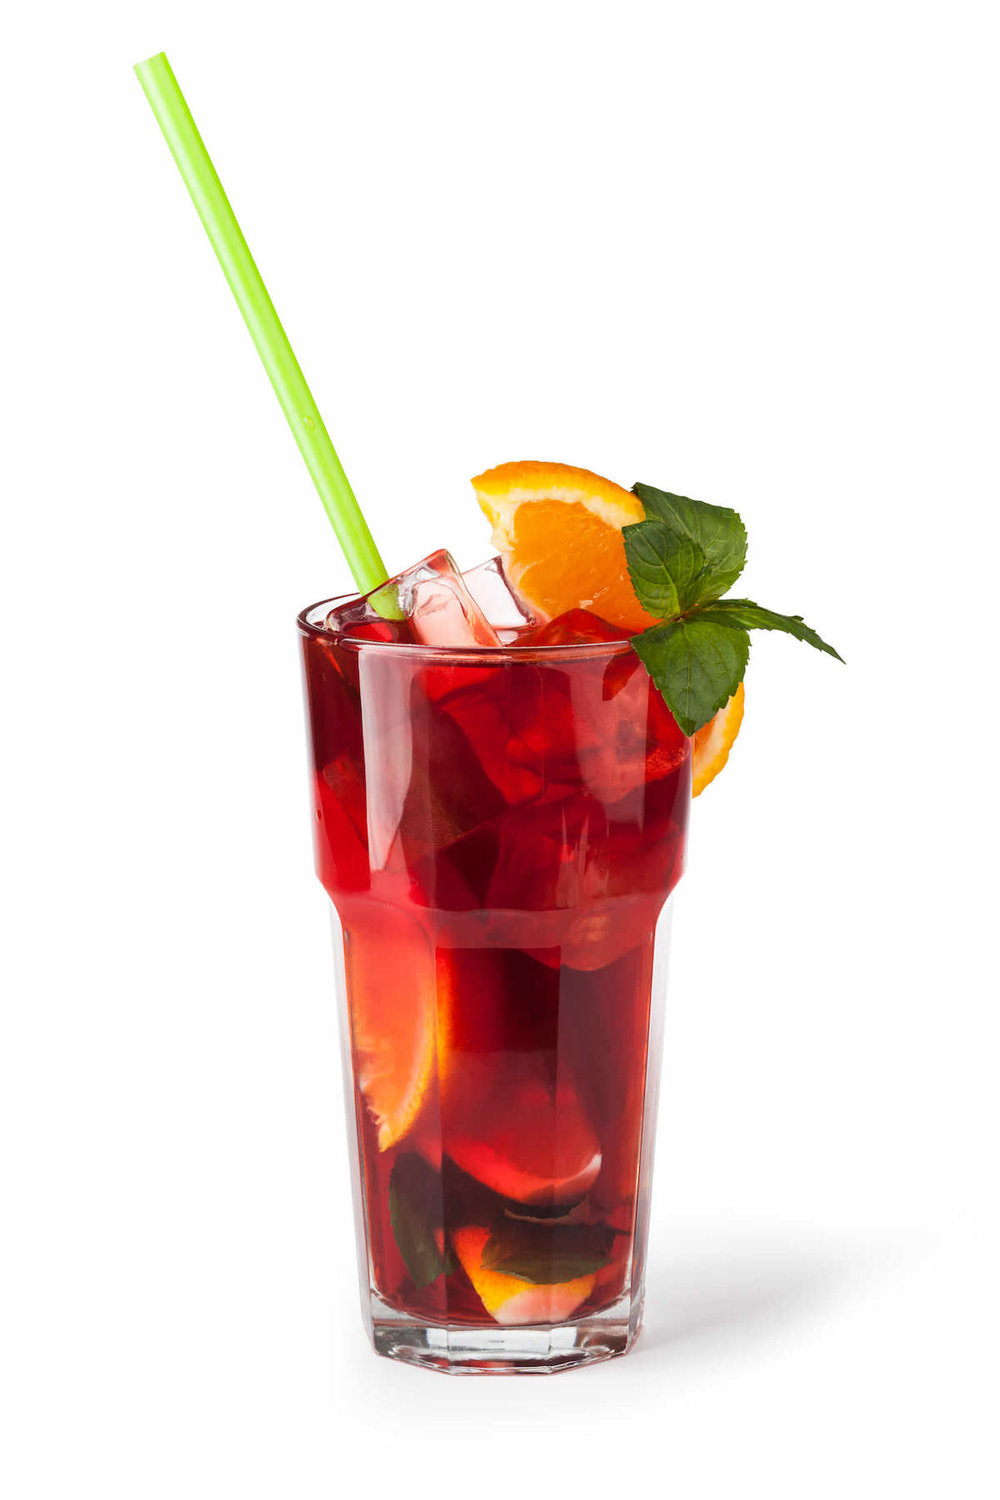 hibisicus mint tea recipe iced tea.jpg